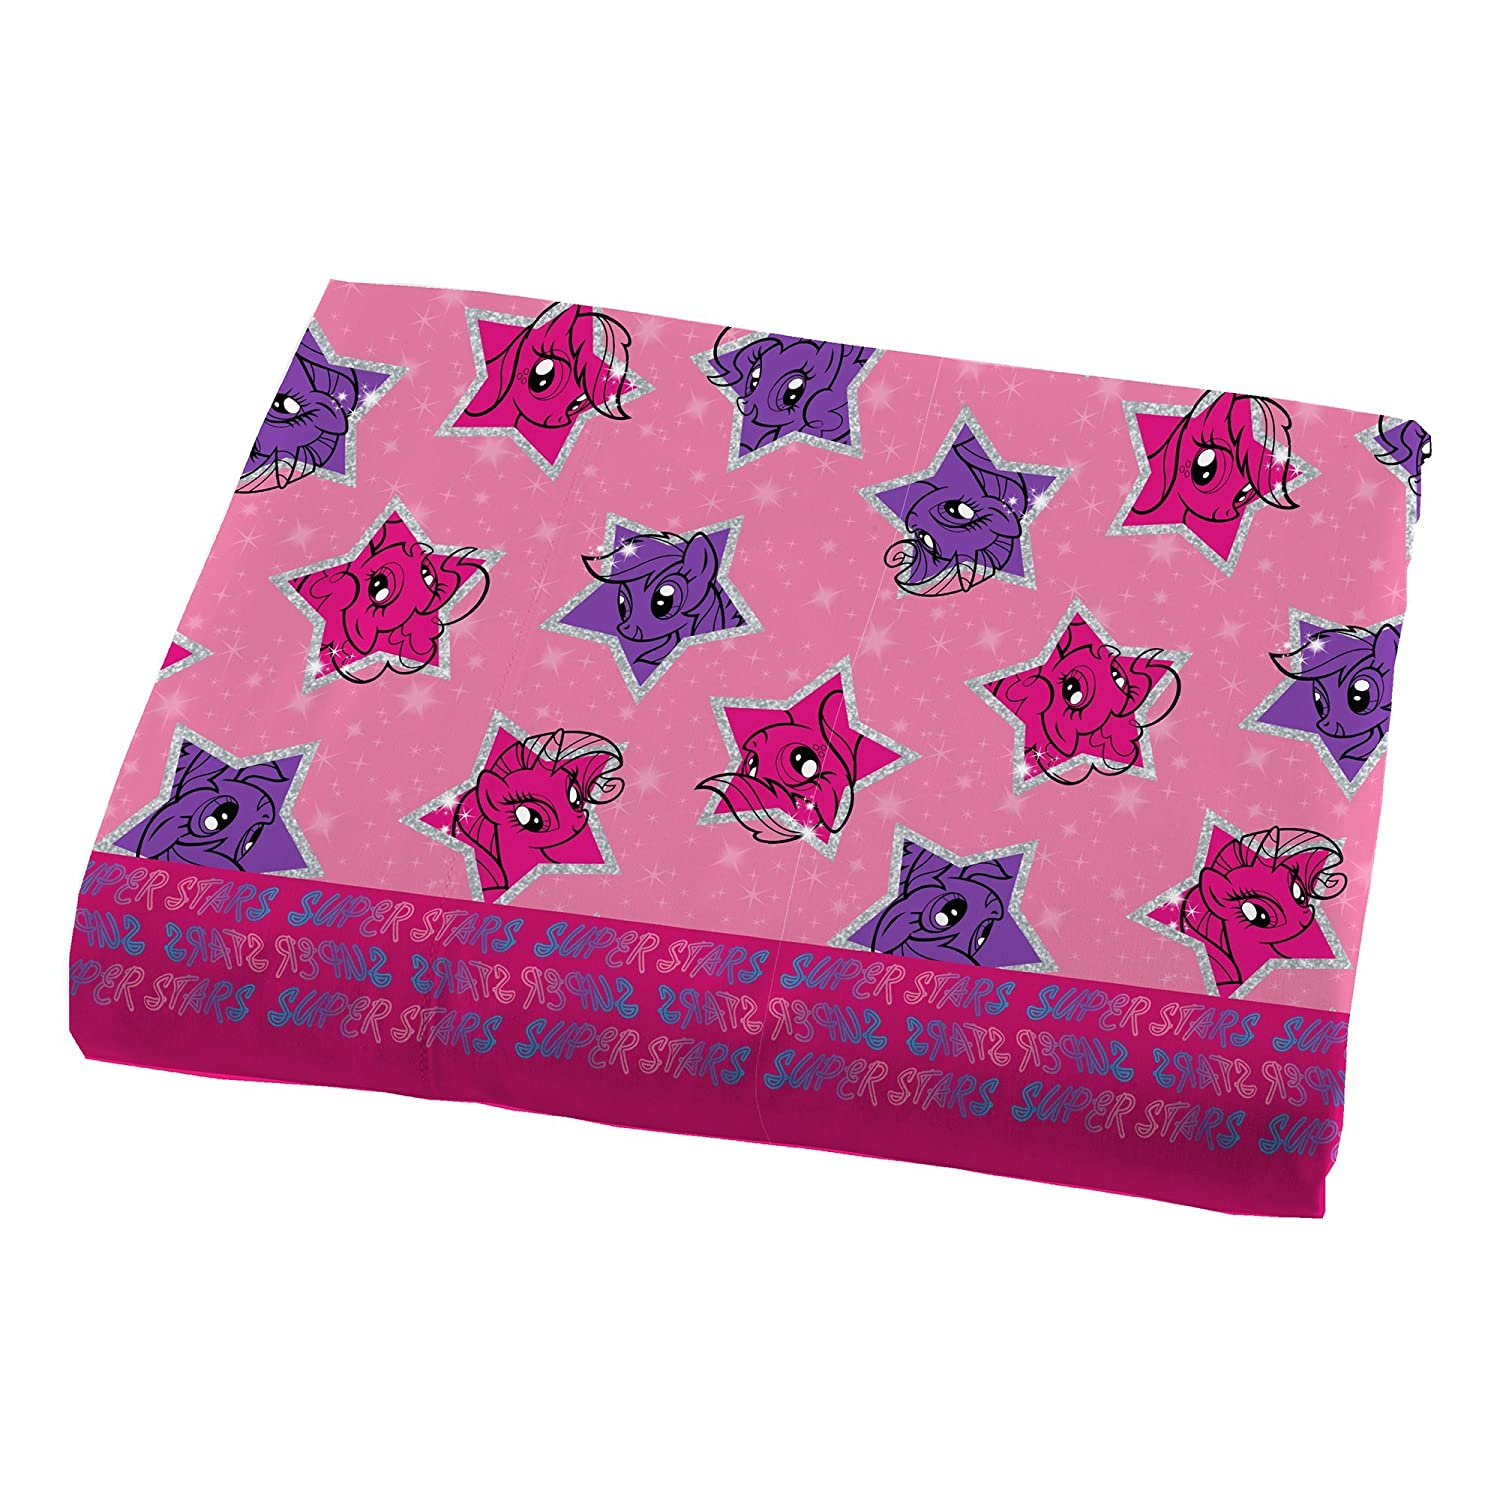 Hasbro My Little Pony The Stars are Out Sheet Set, Twin MA395C